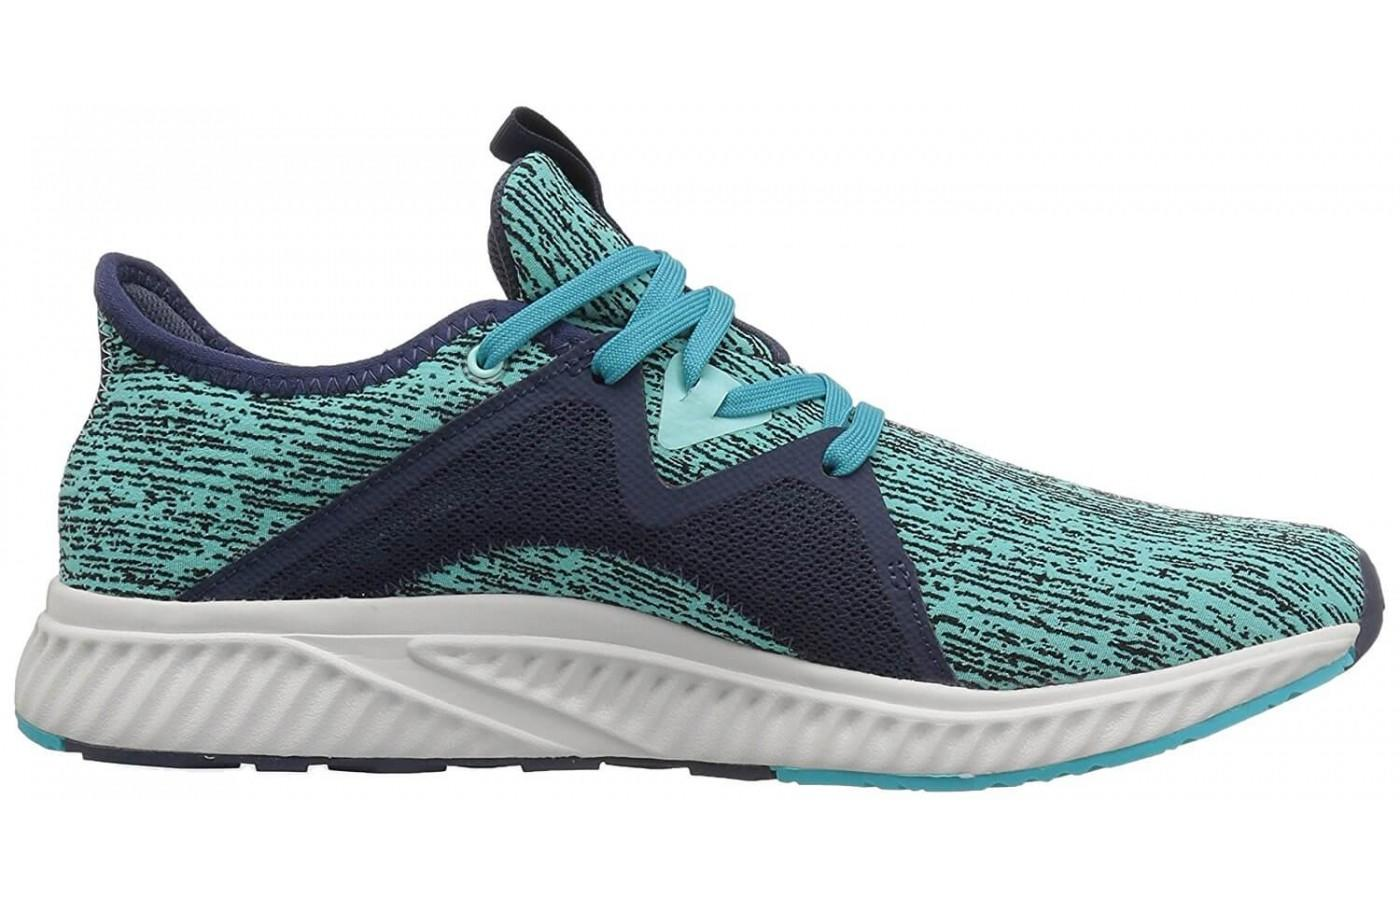 This is a lightweight, versatile running and cross training shoe.